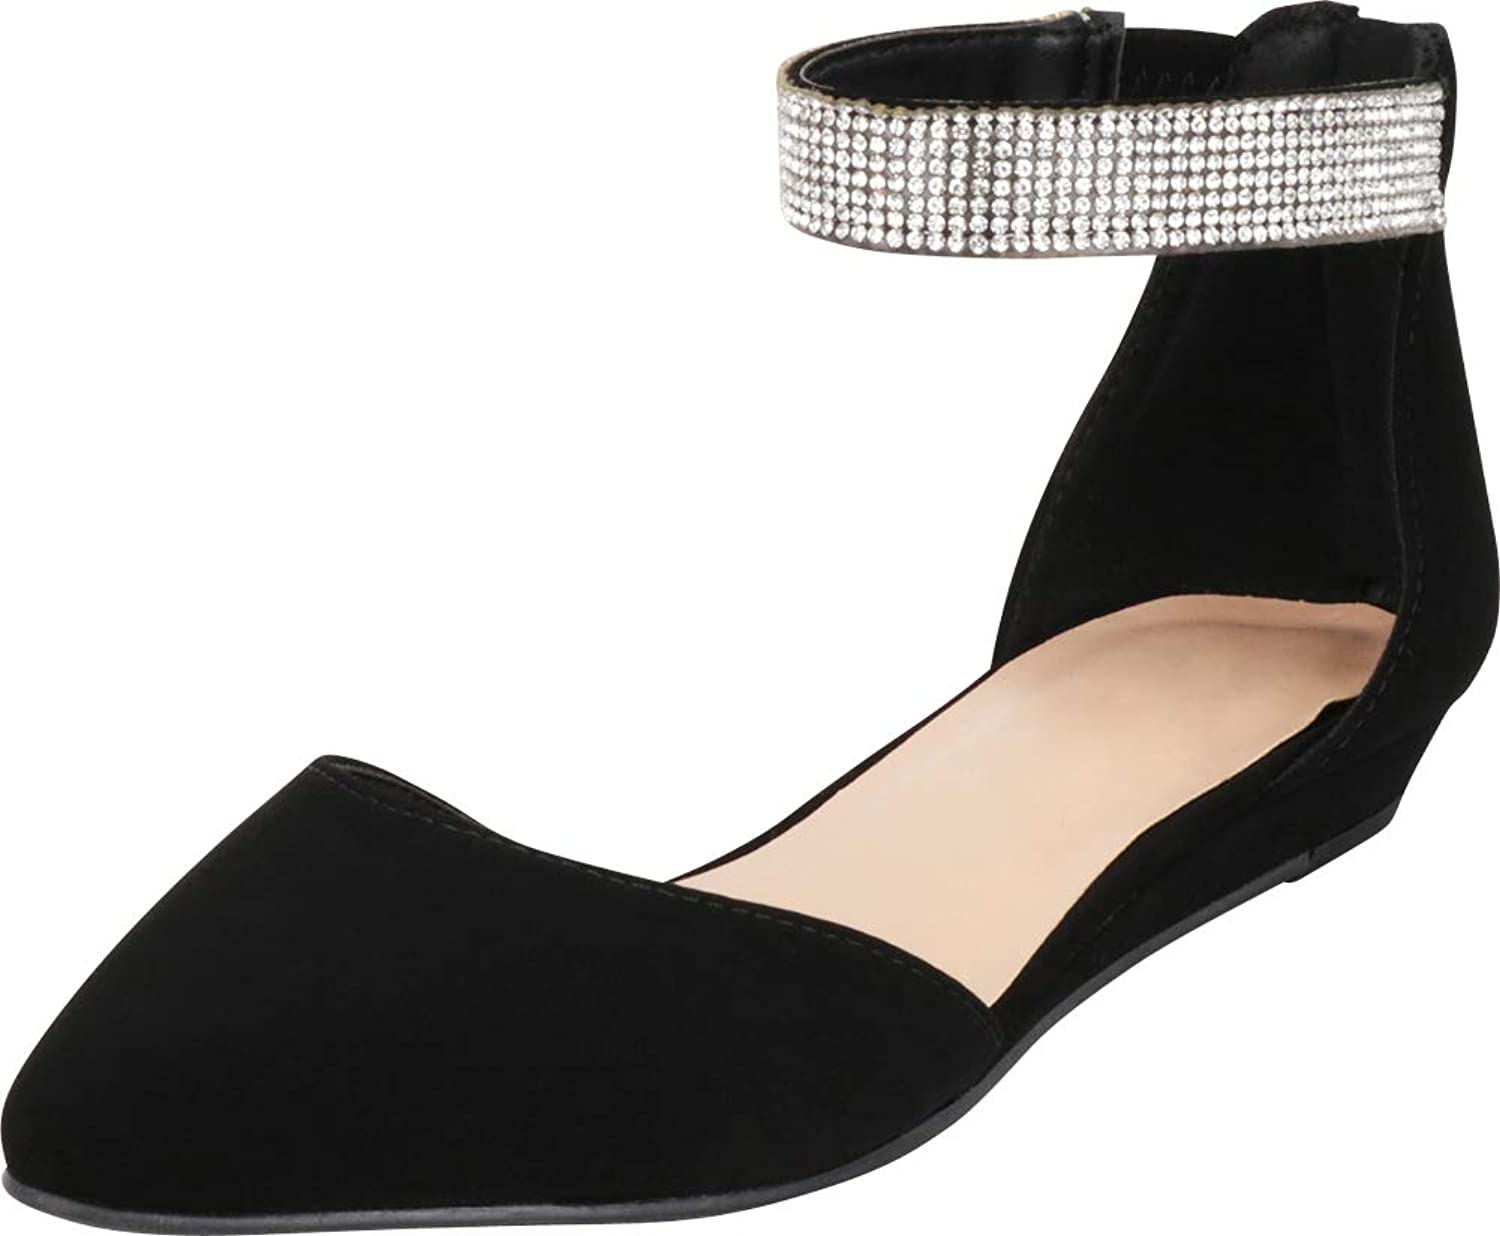 Cambridge Select Women's Pointed Toe D'Orsay Crystal Rhinestone Ankle Strap Low Wedge Ballet Flat